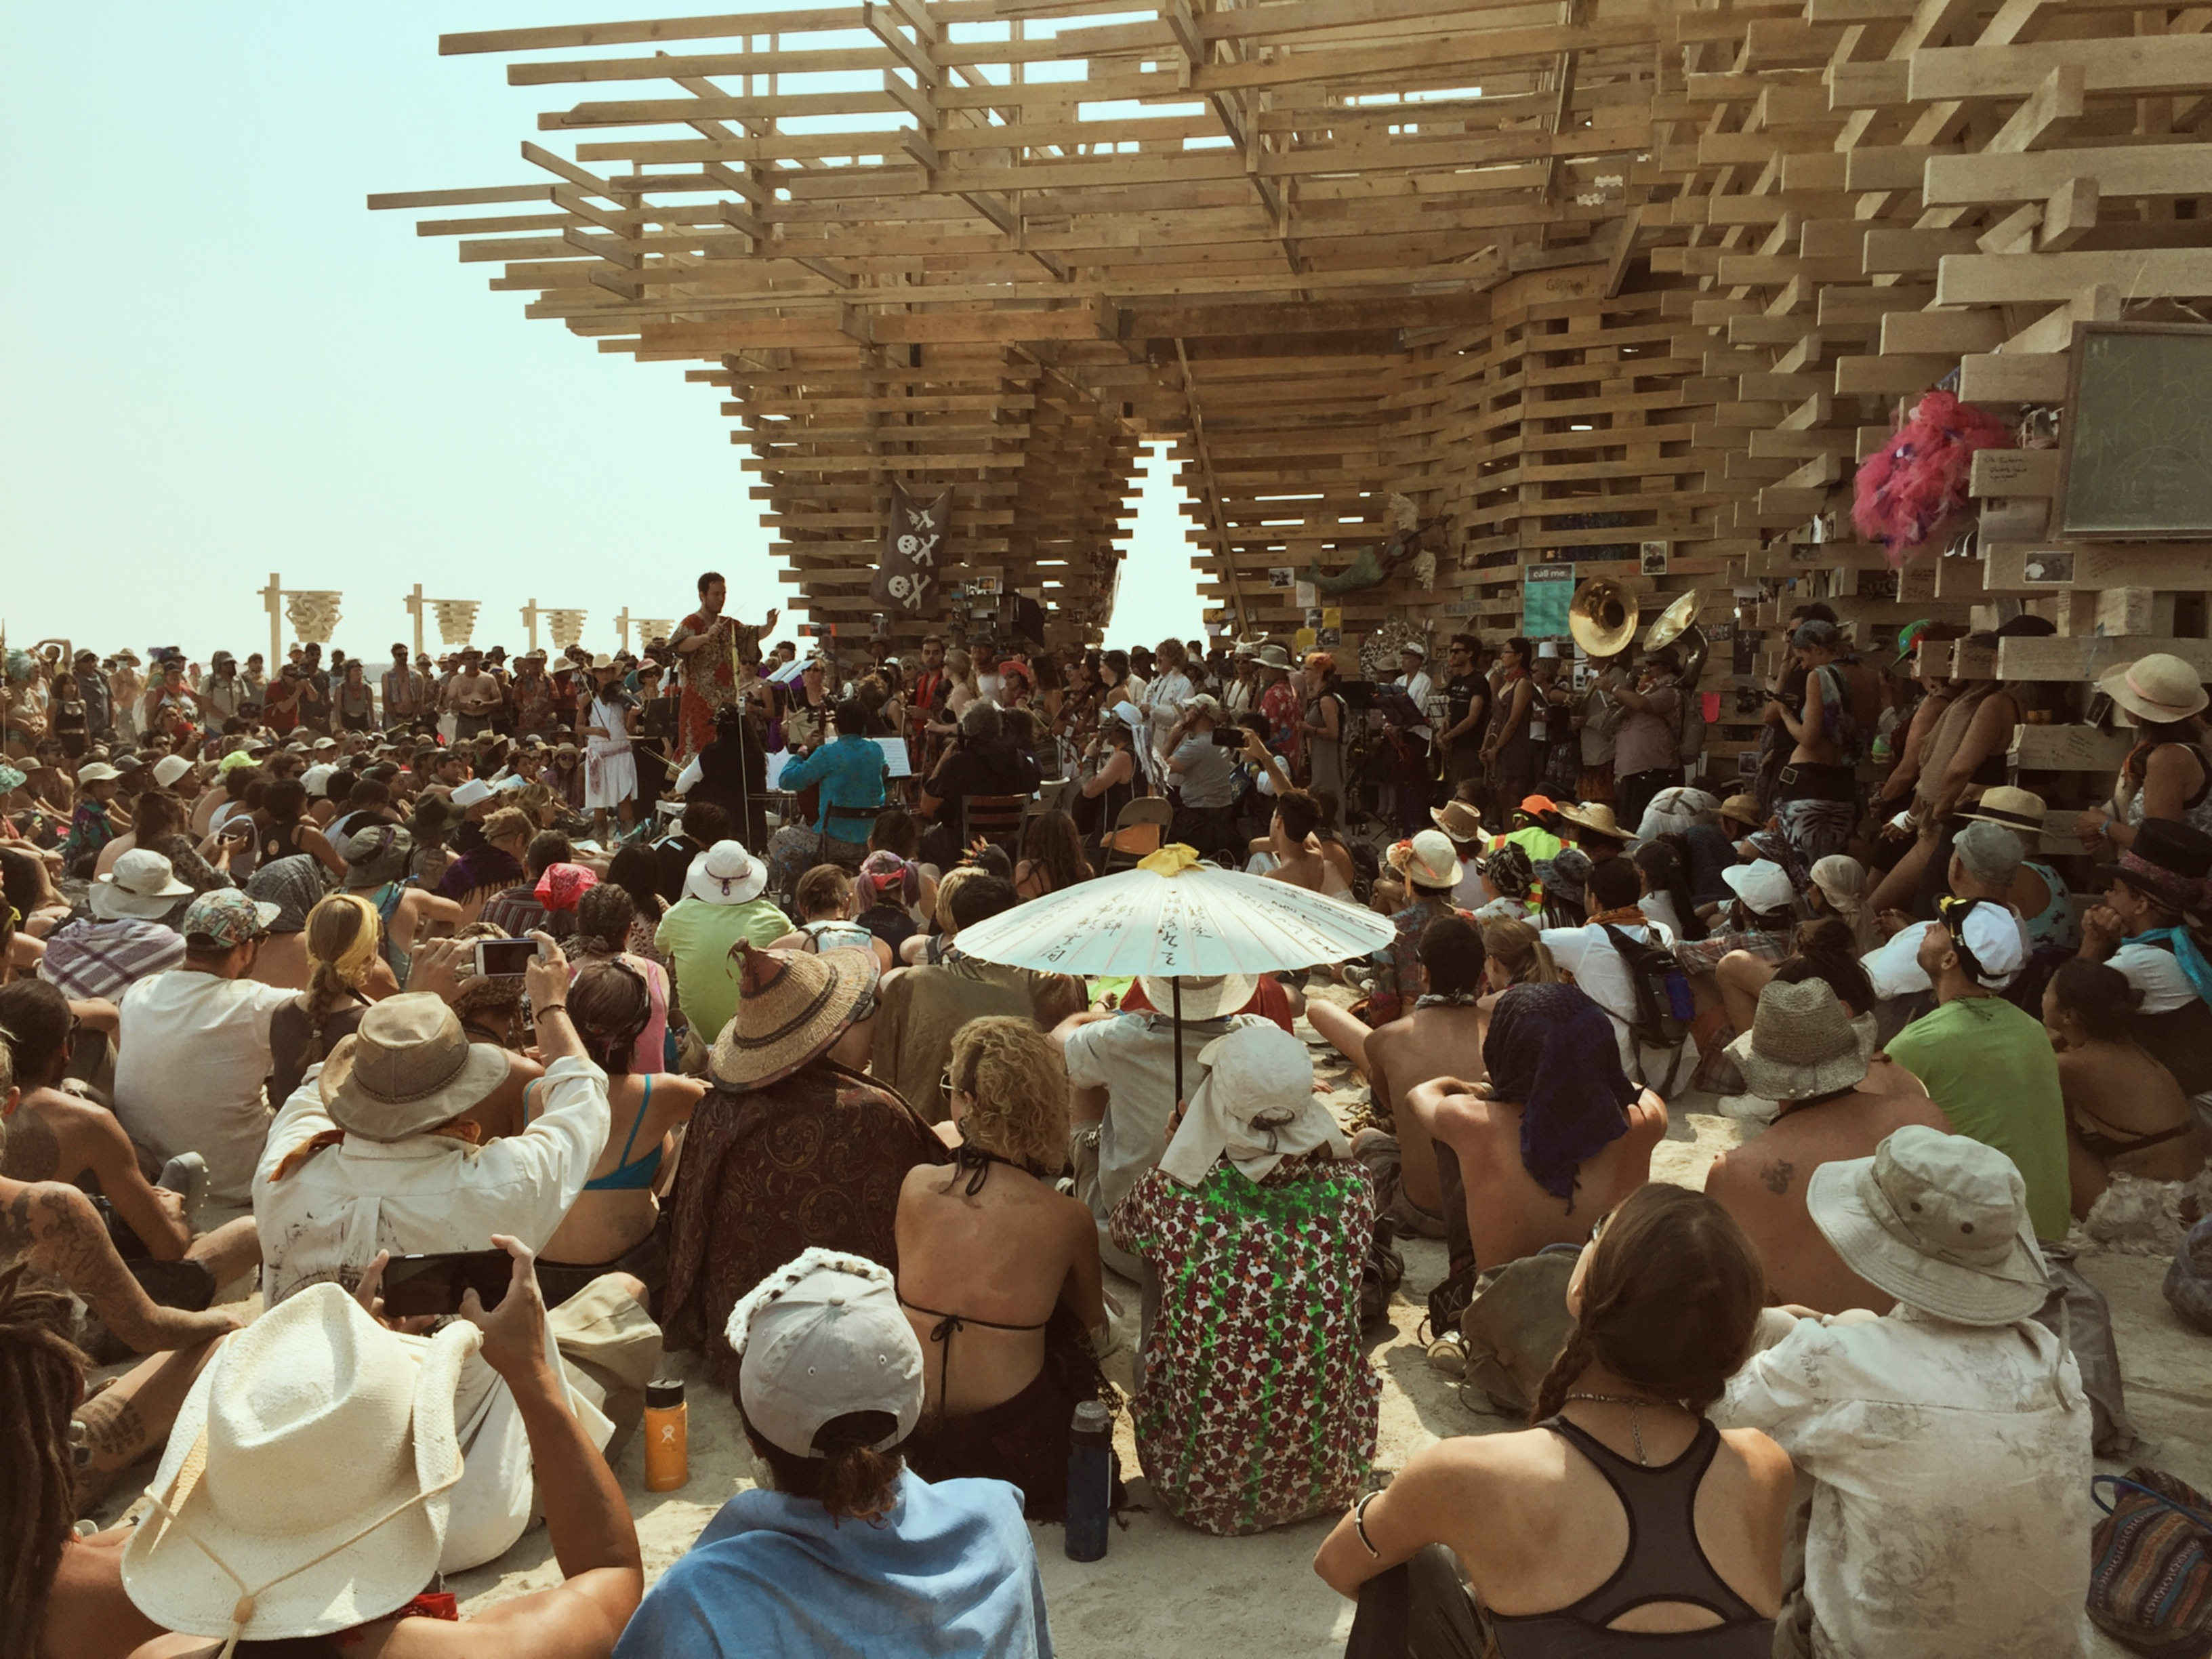 SURVIVAL GUIDE to Burning Man: Tickets, Logistics